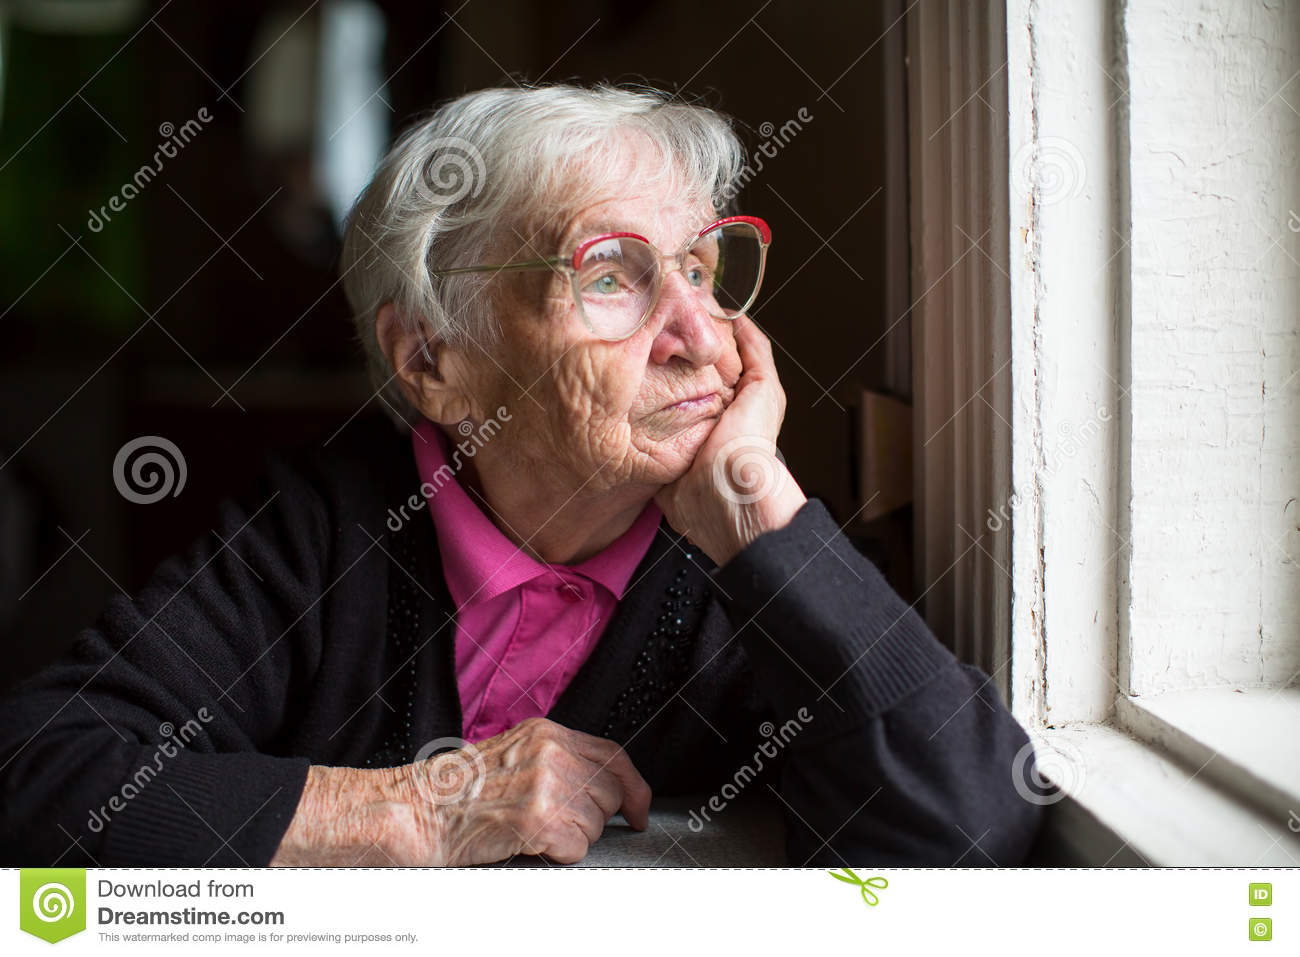 Elderly woman in glasses thoughtfully looking out the window. Loneliness.